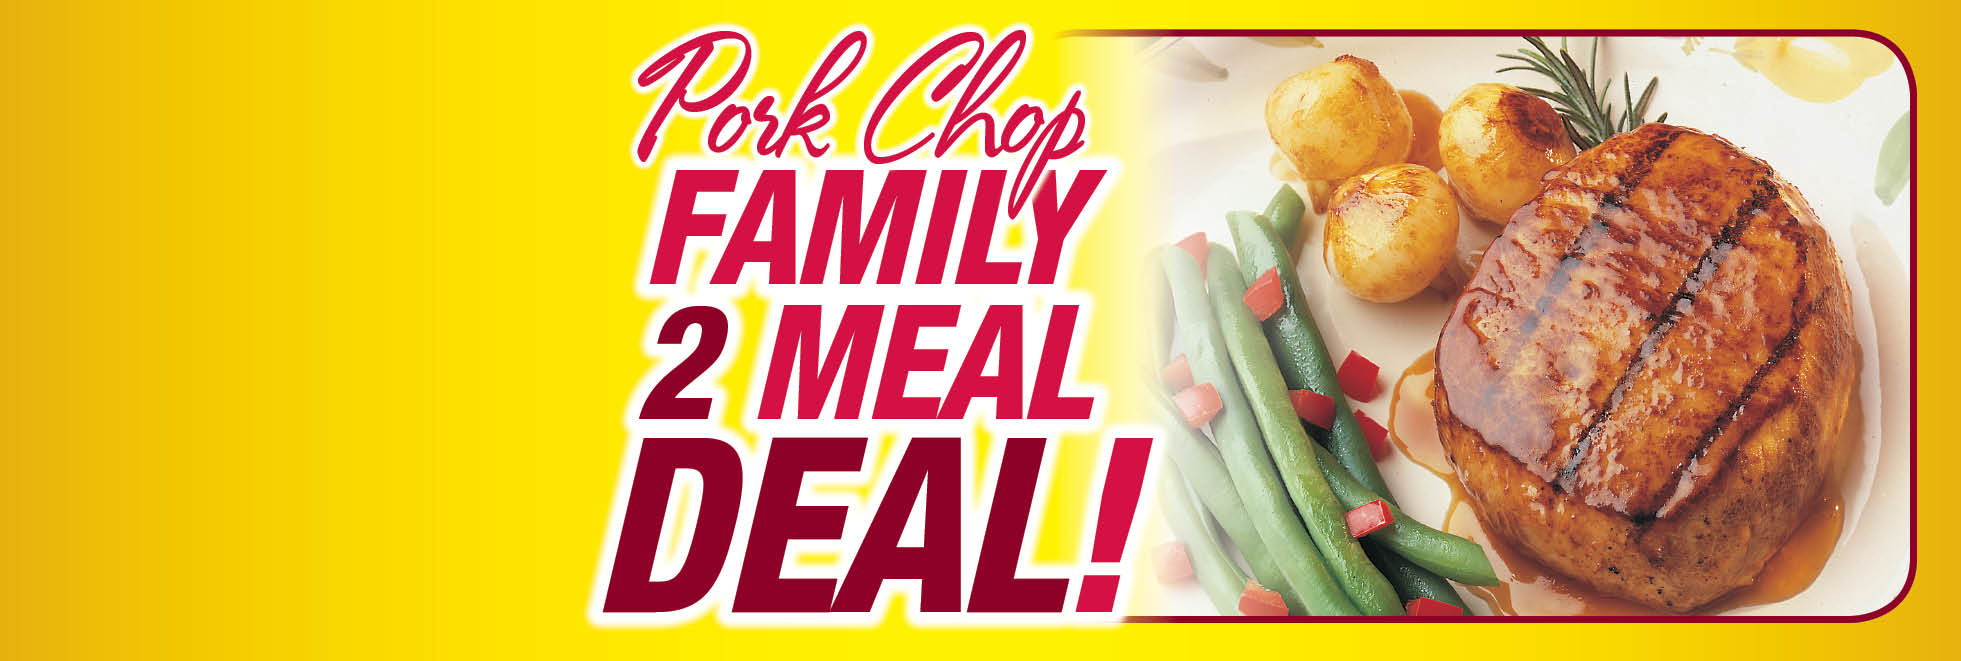 Pork Chop Family Meal Deal